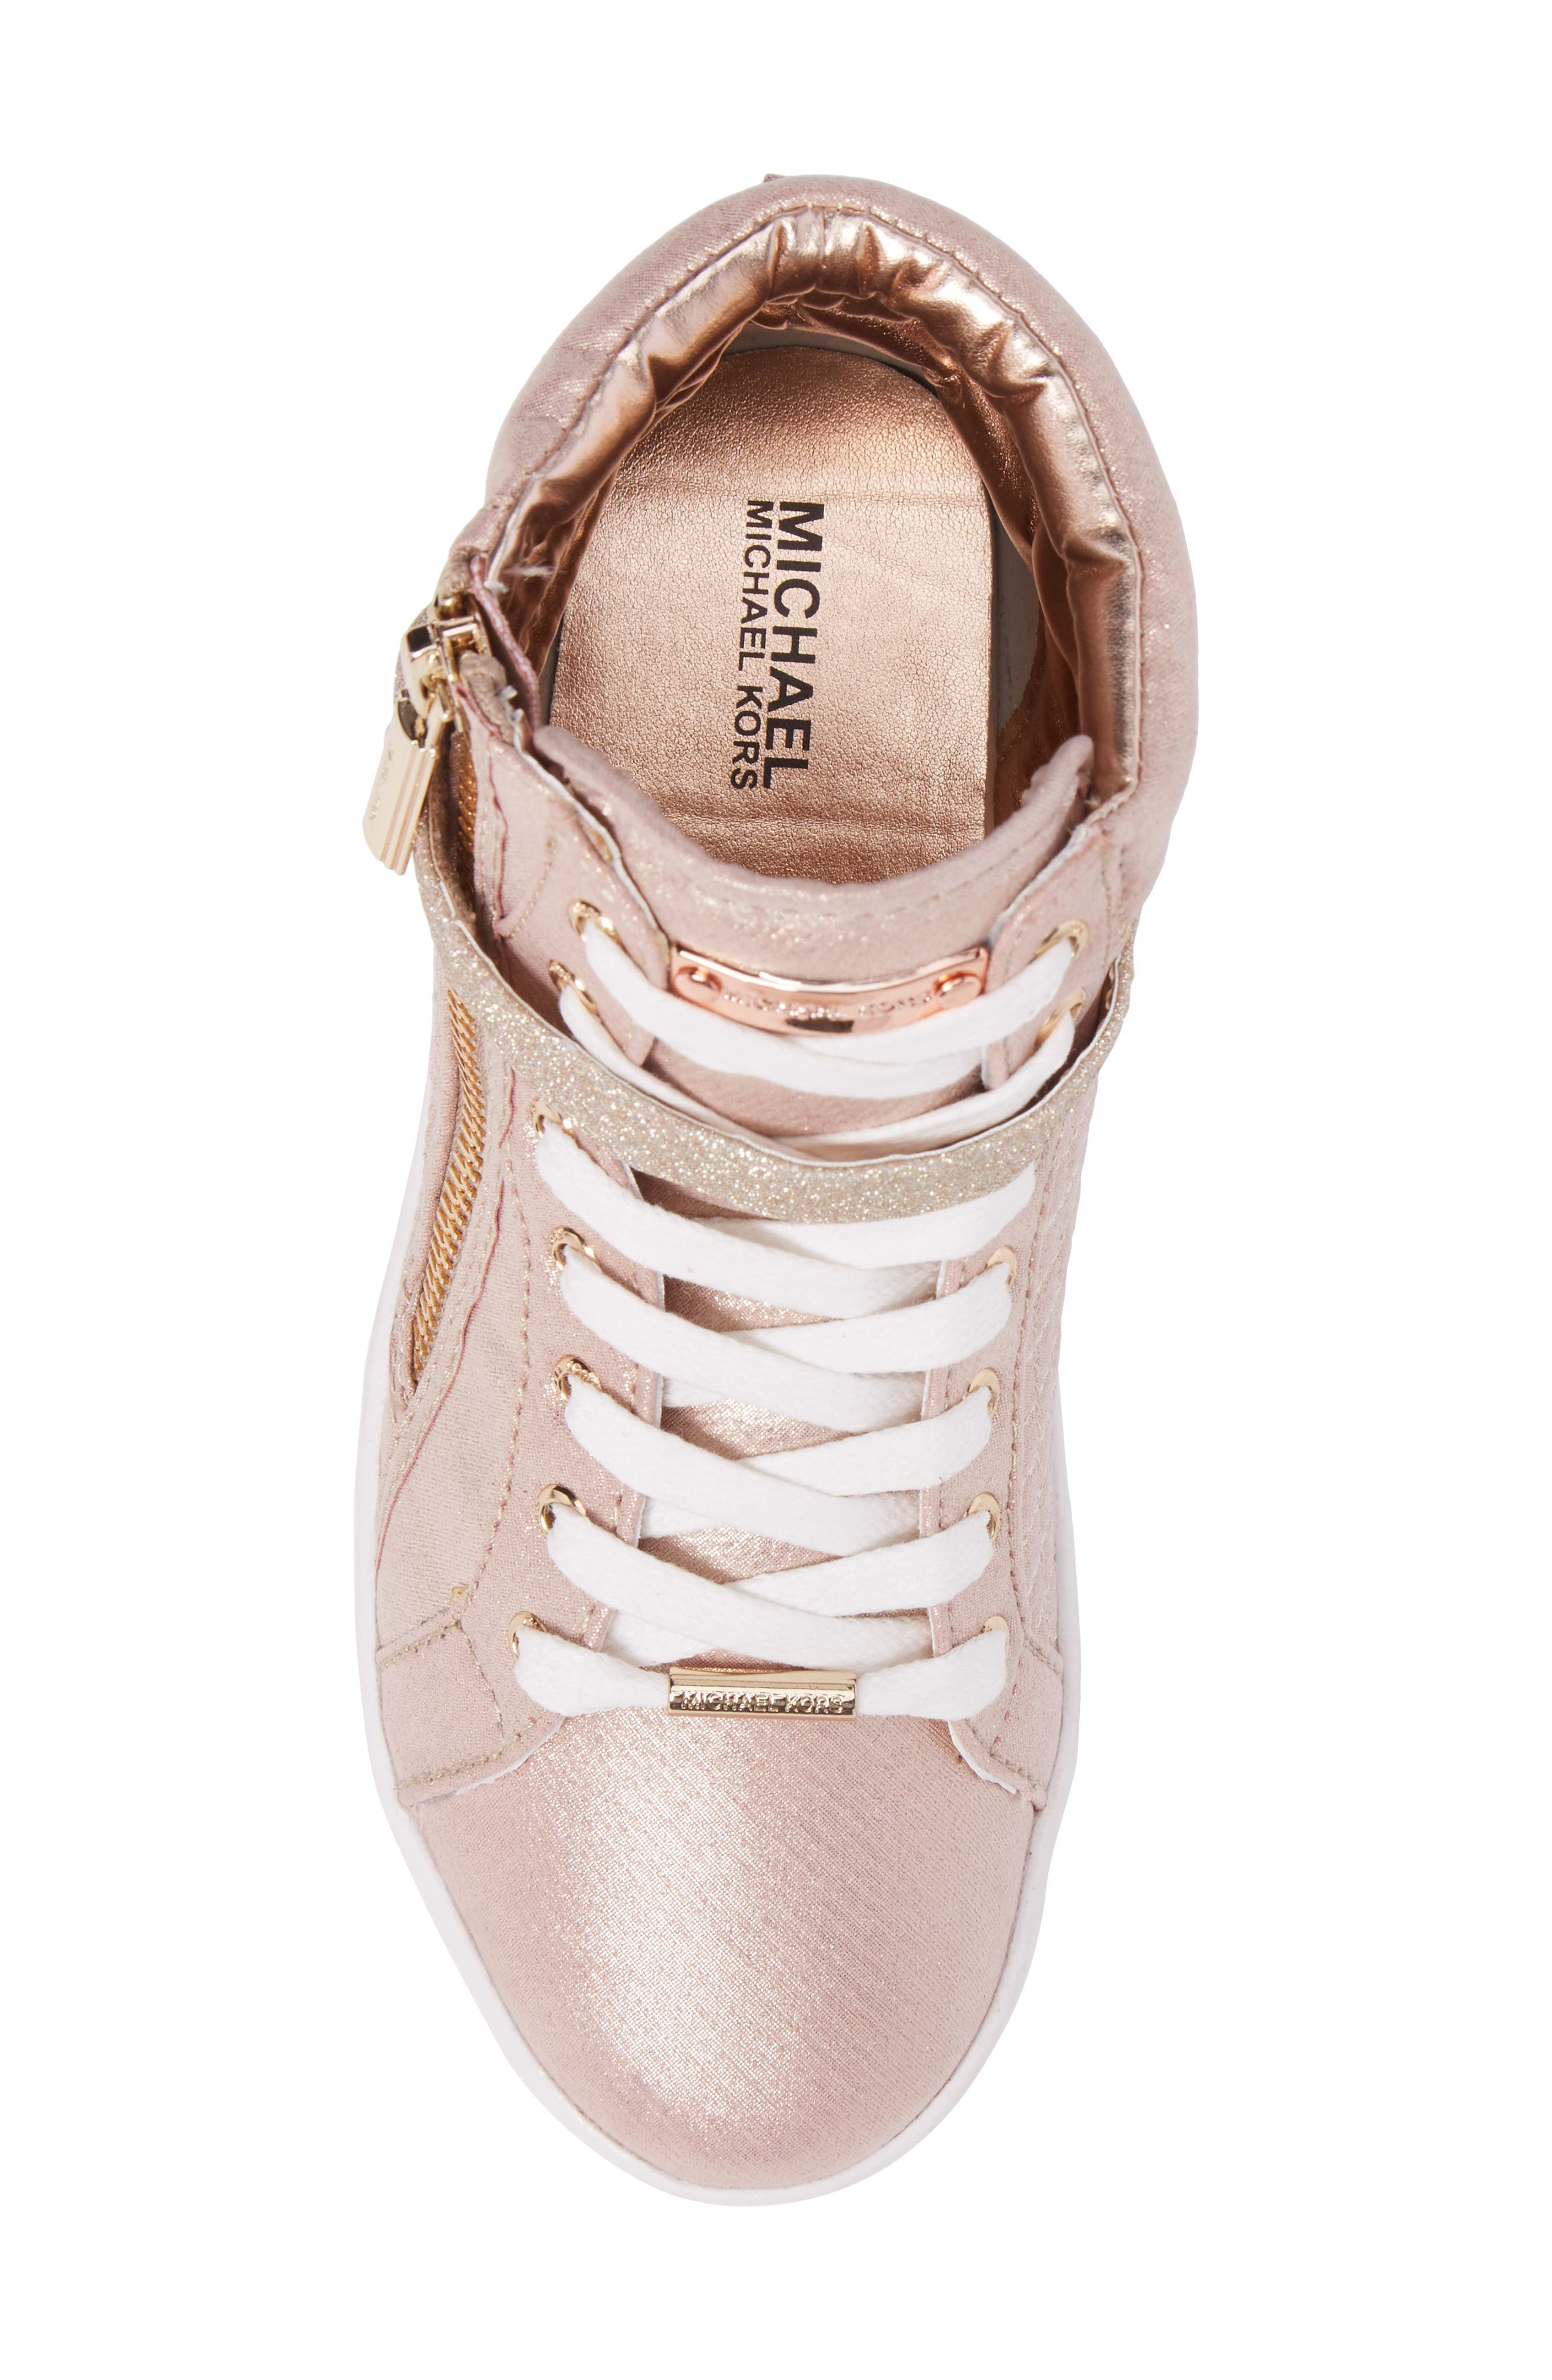 Ivy Rio Glittery High Top Sneaker,                             Alternate thumbnail 5, color,                             220